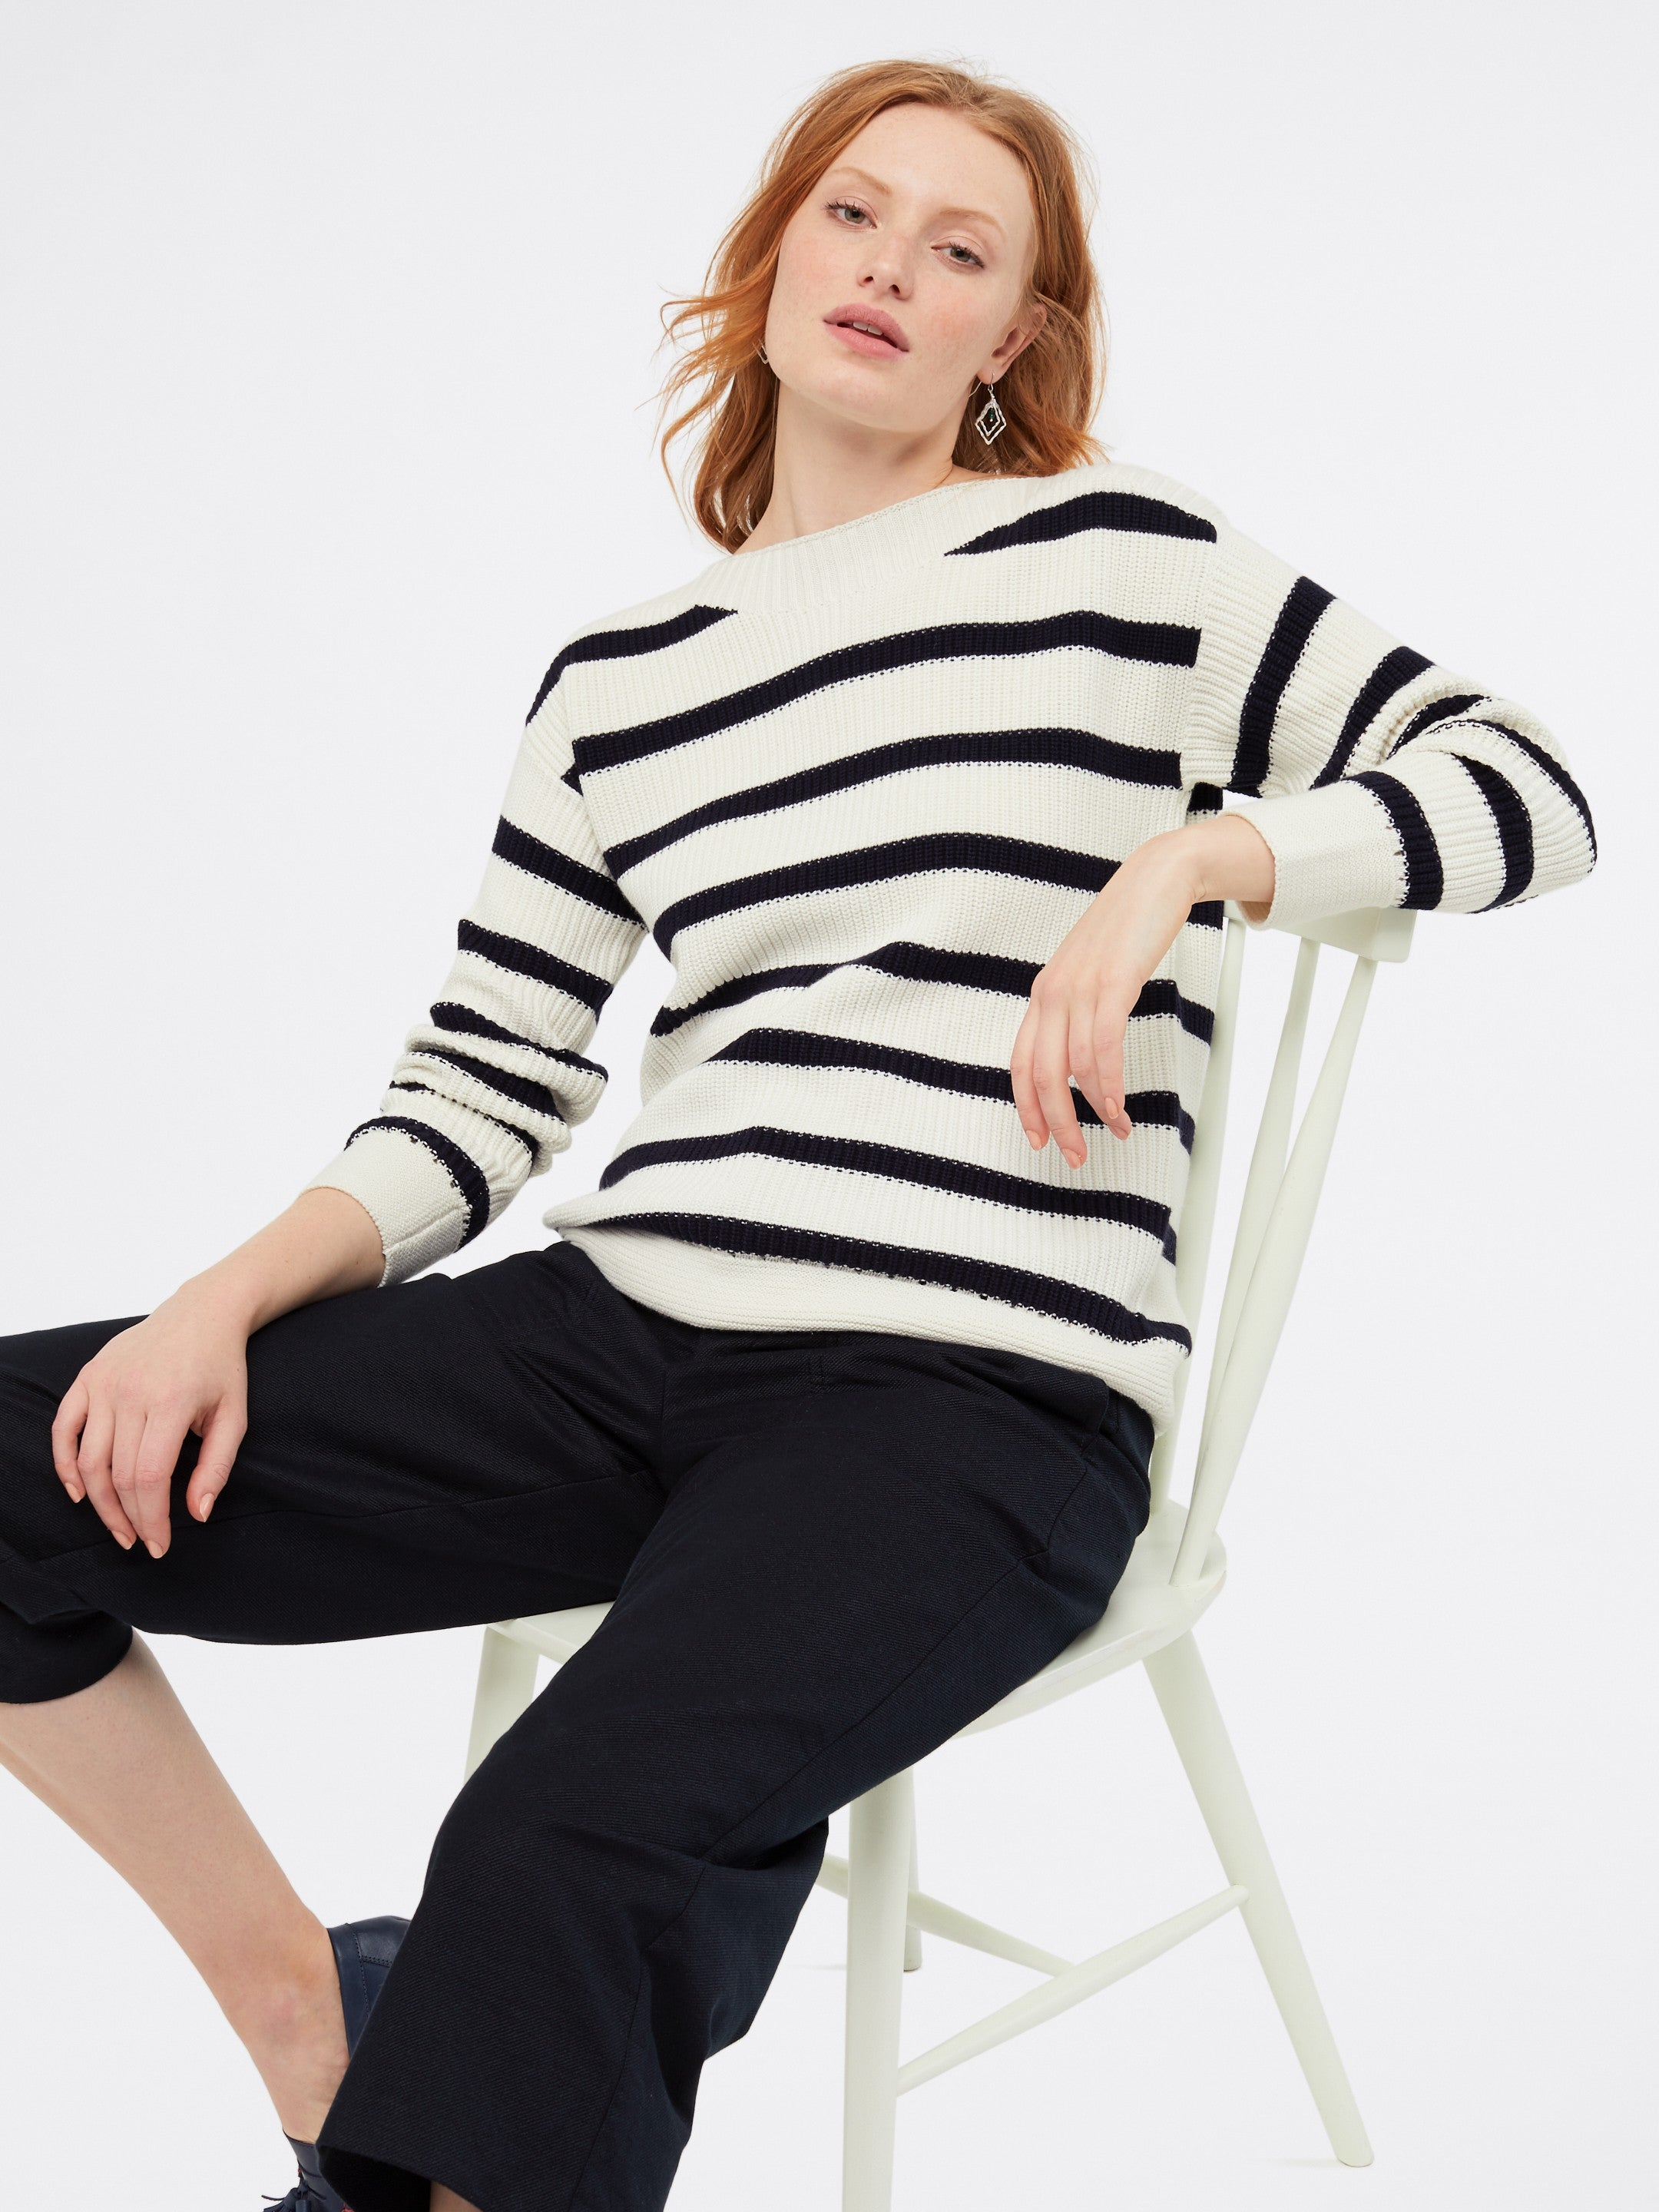 White Stuff South Seas Jumper for Ladies in Cream Stripe